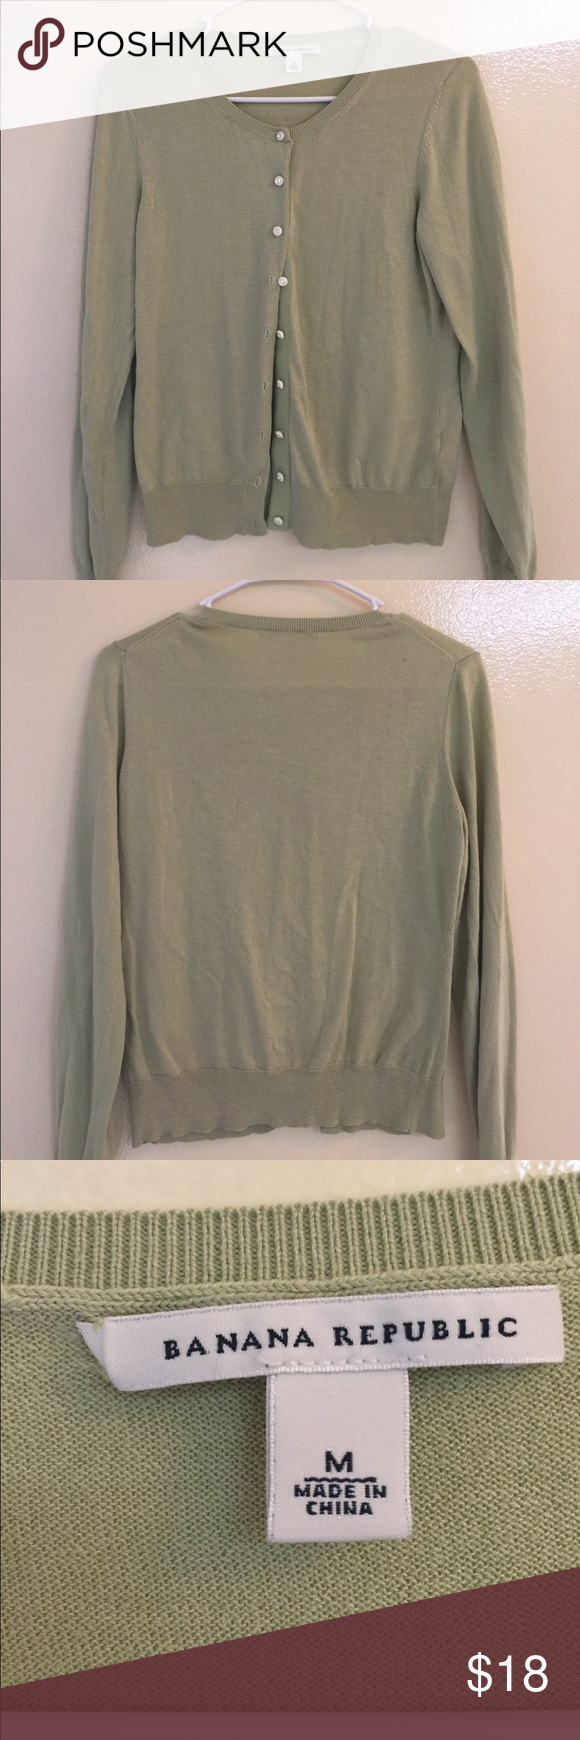 Banana Republic Women's Green Cardigan Sweater | Banana republic ...